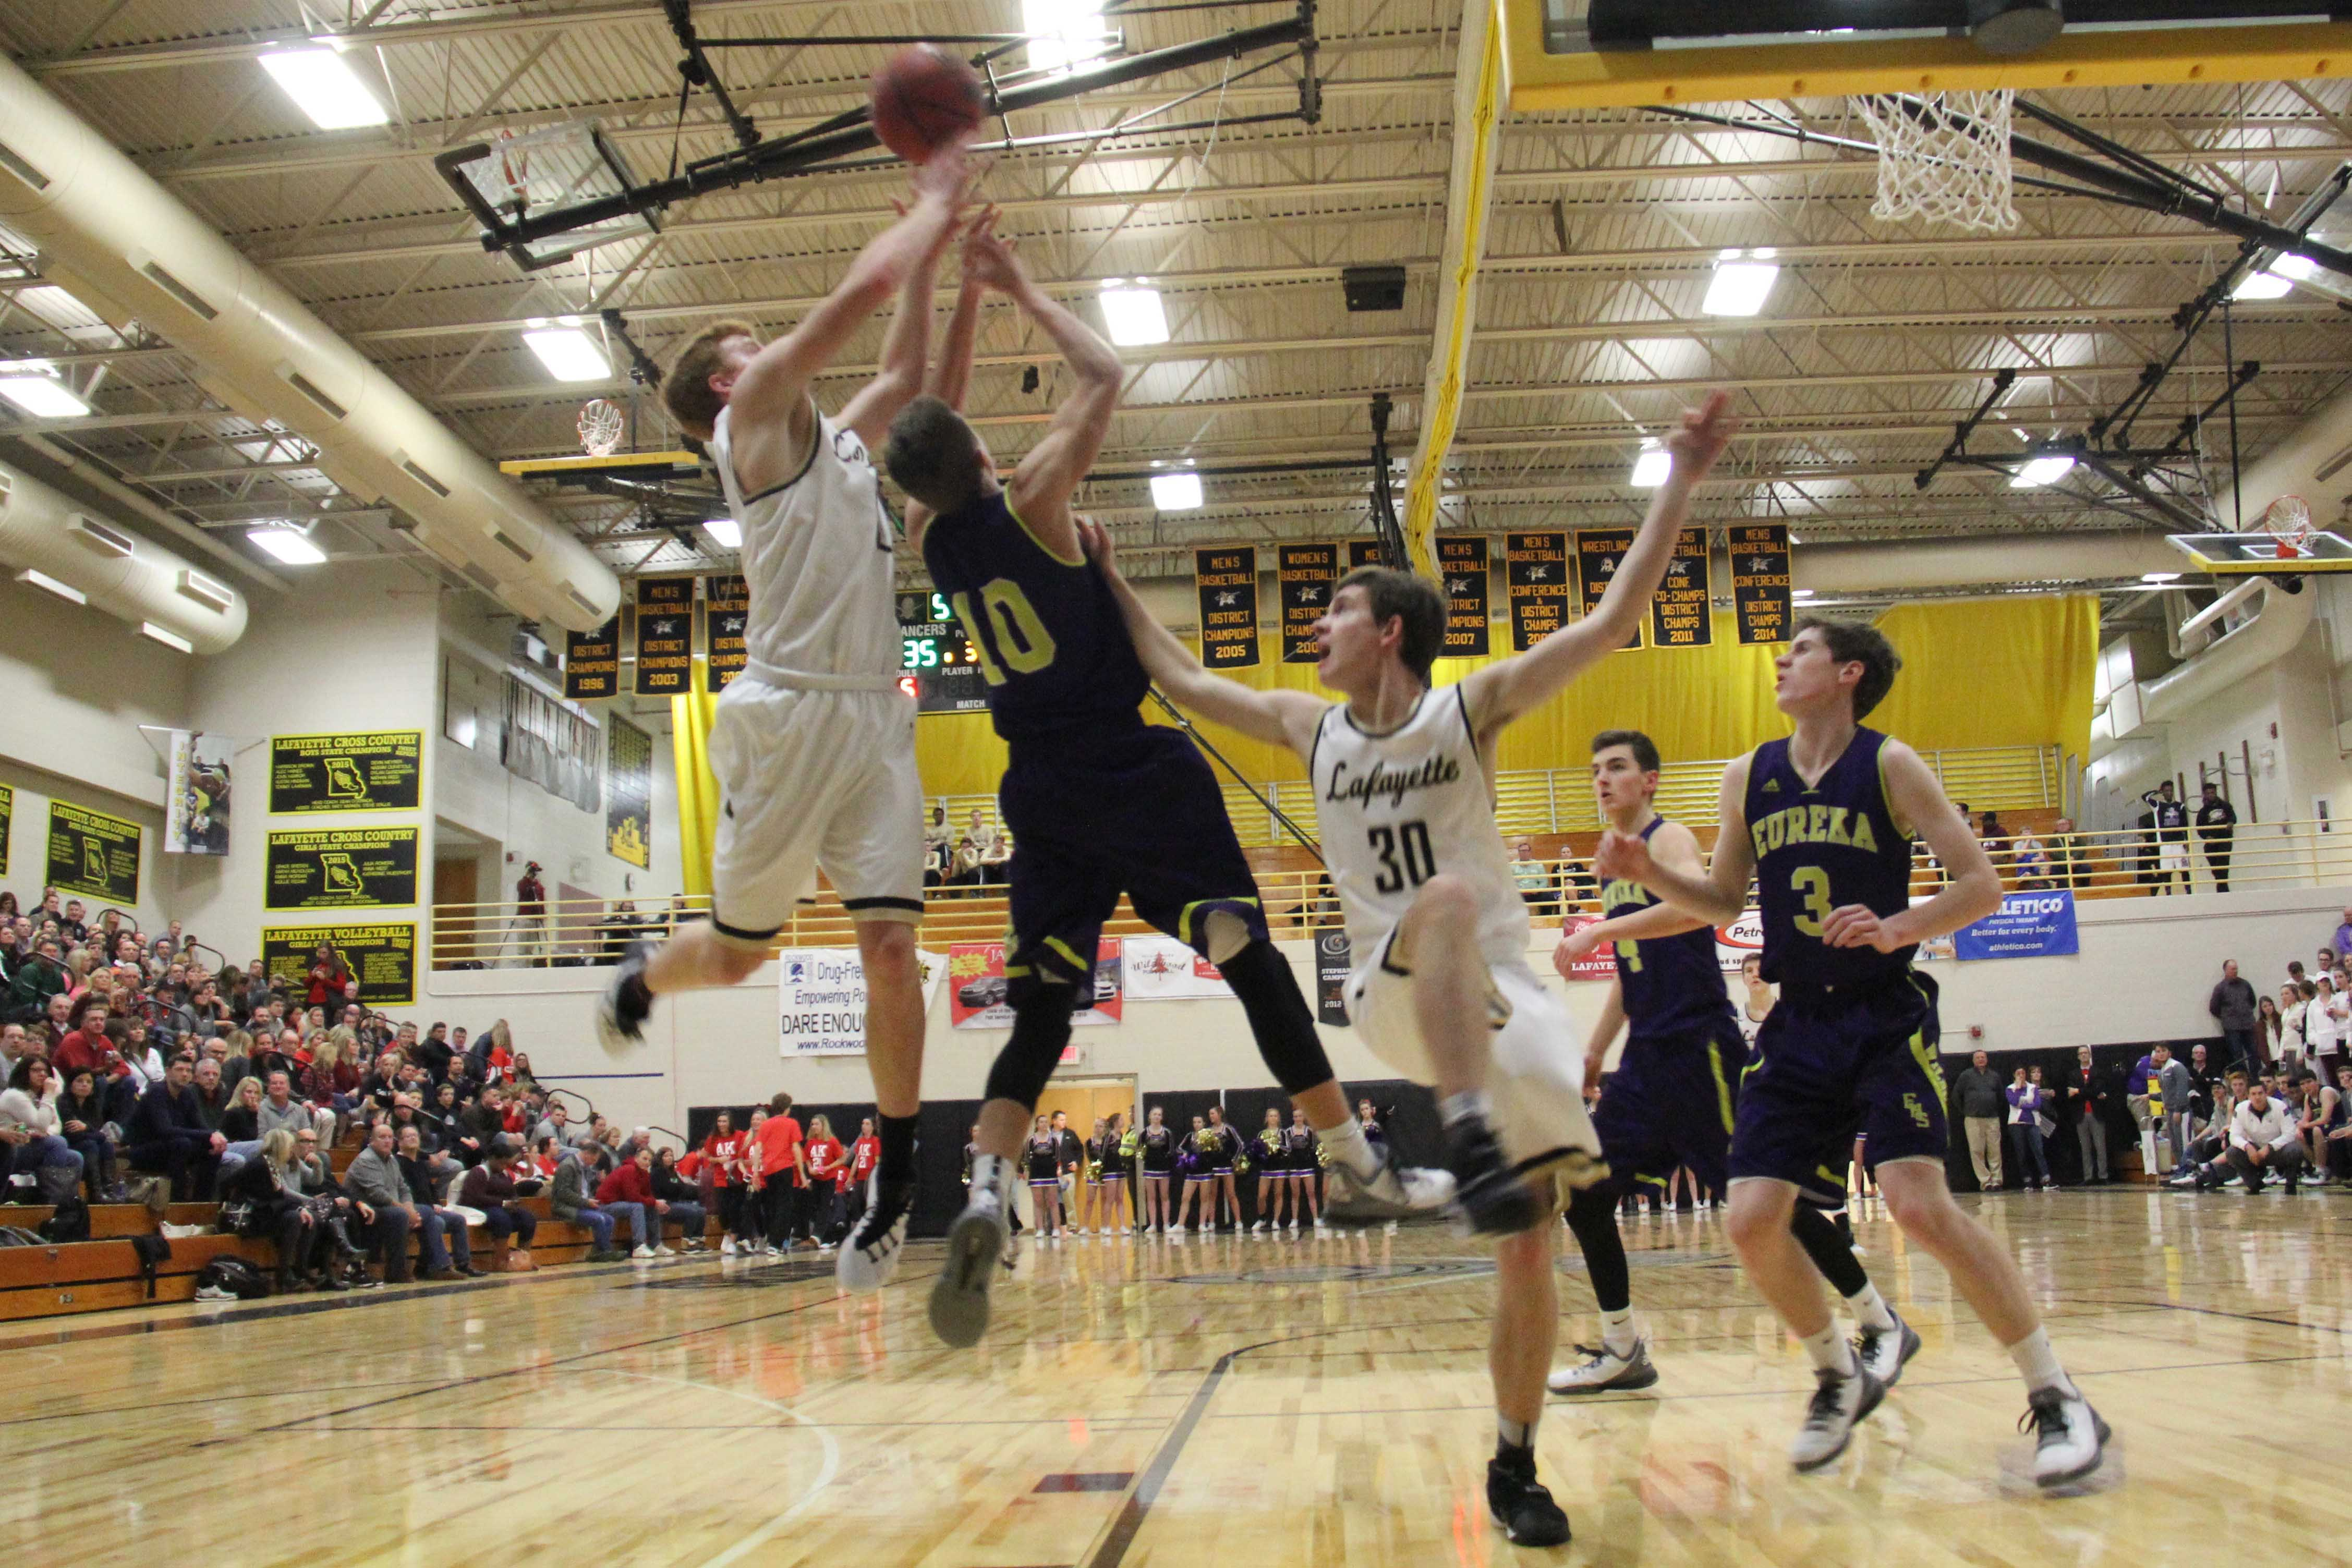 Will Stonecipher (left) fights for a rebound in a game against rival Eureka.